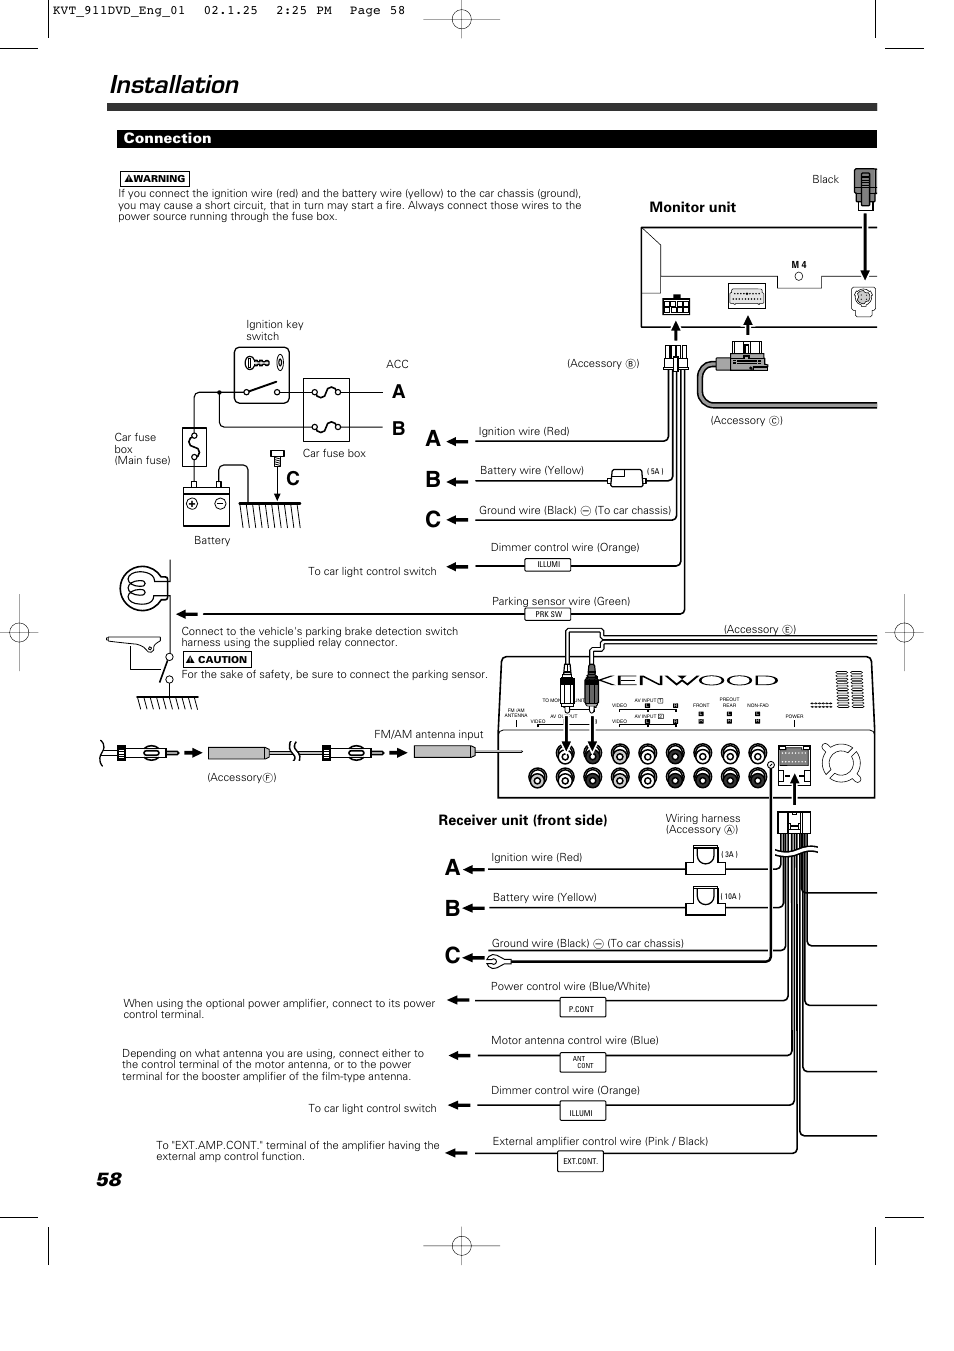 kvt 815 wiring diagram